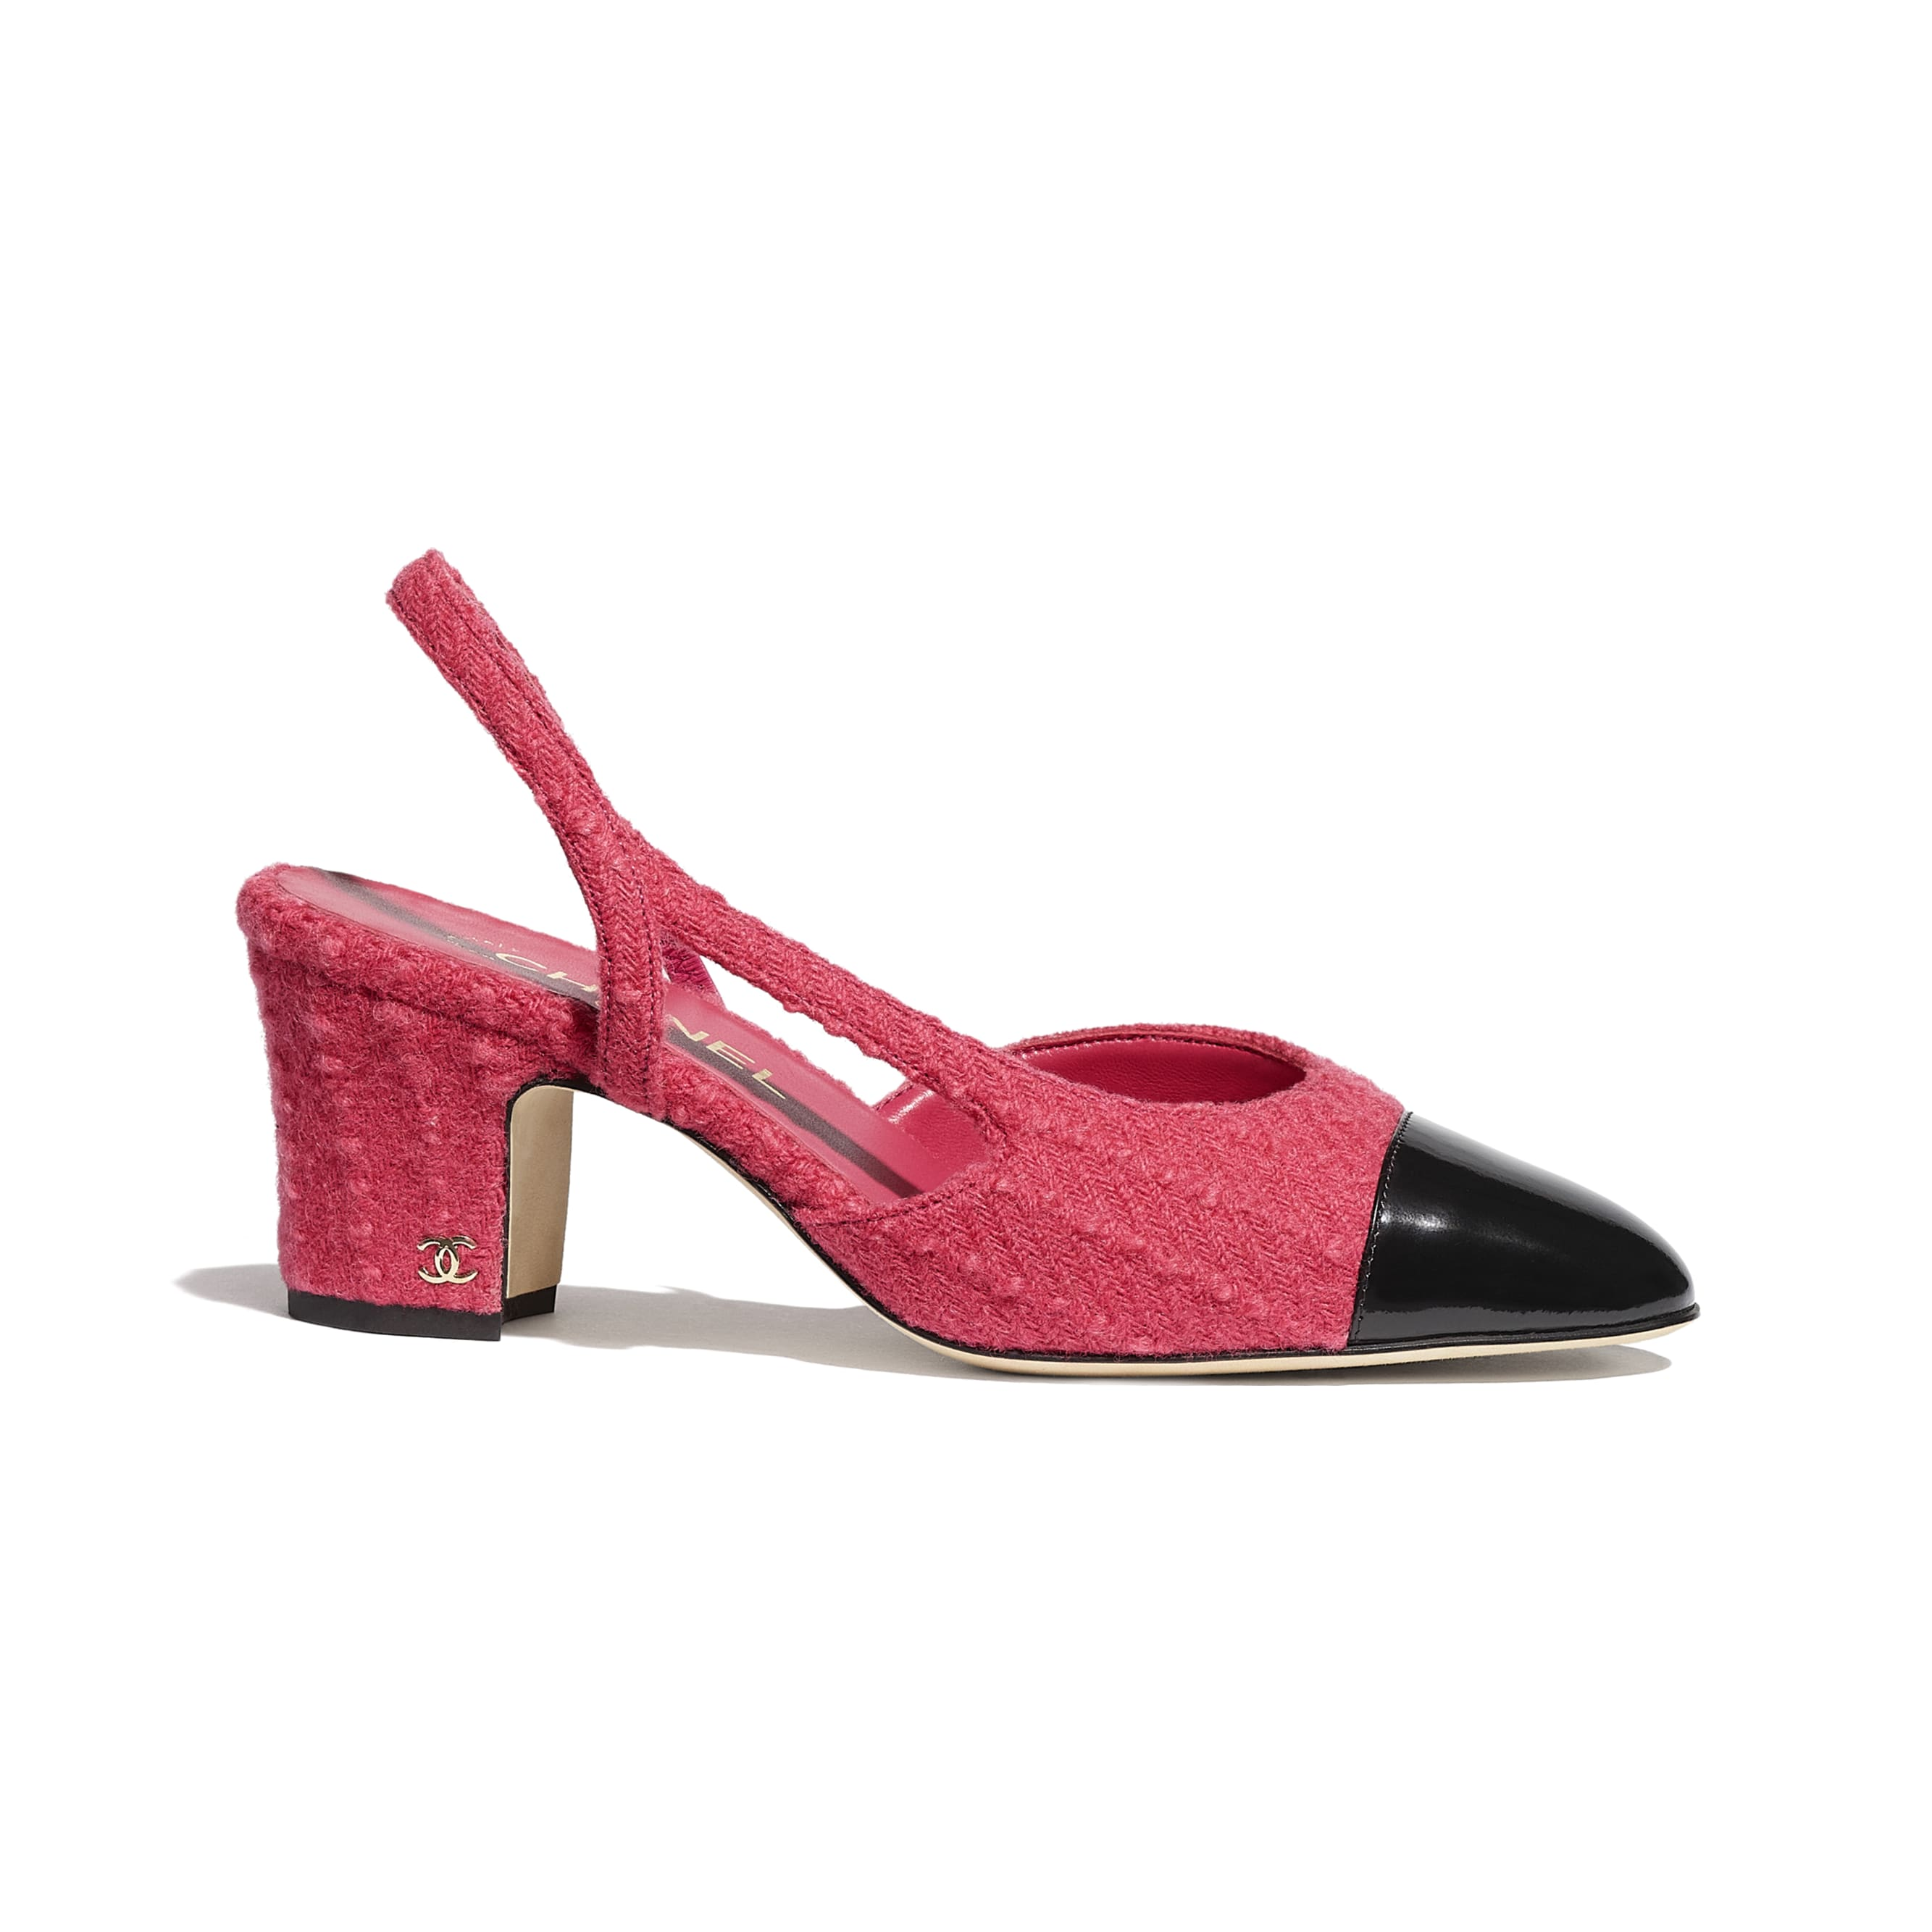 Sling-Back - Pink & Black - Tweed & Calfskin - CHANEL - Default view - see standard sized version